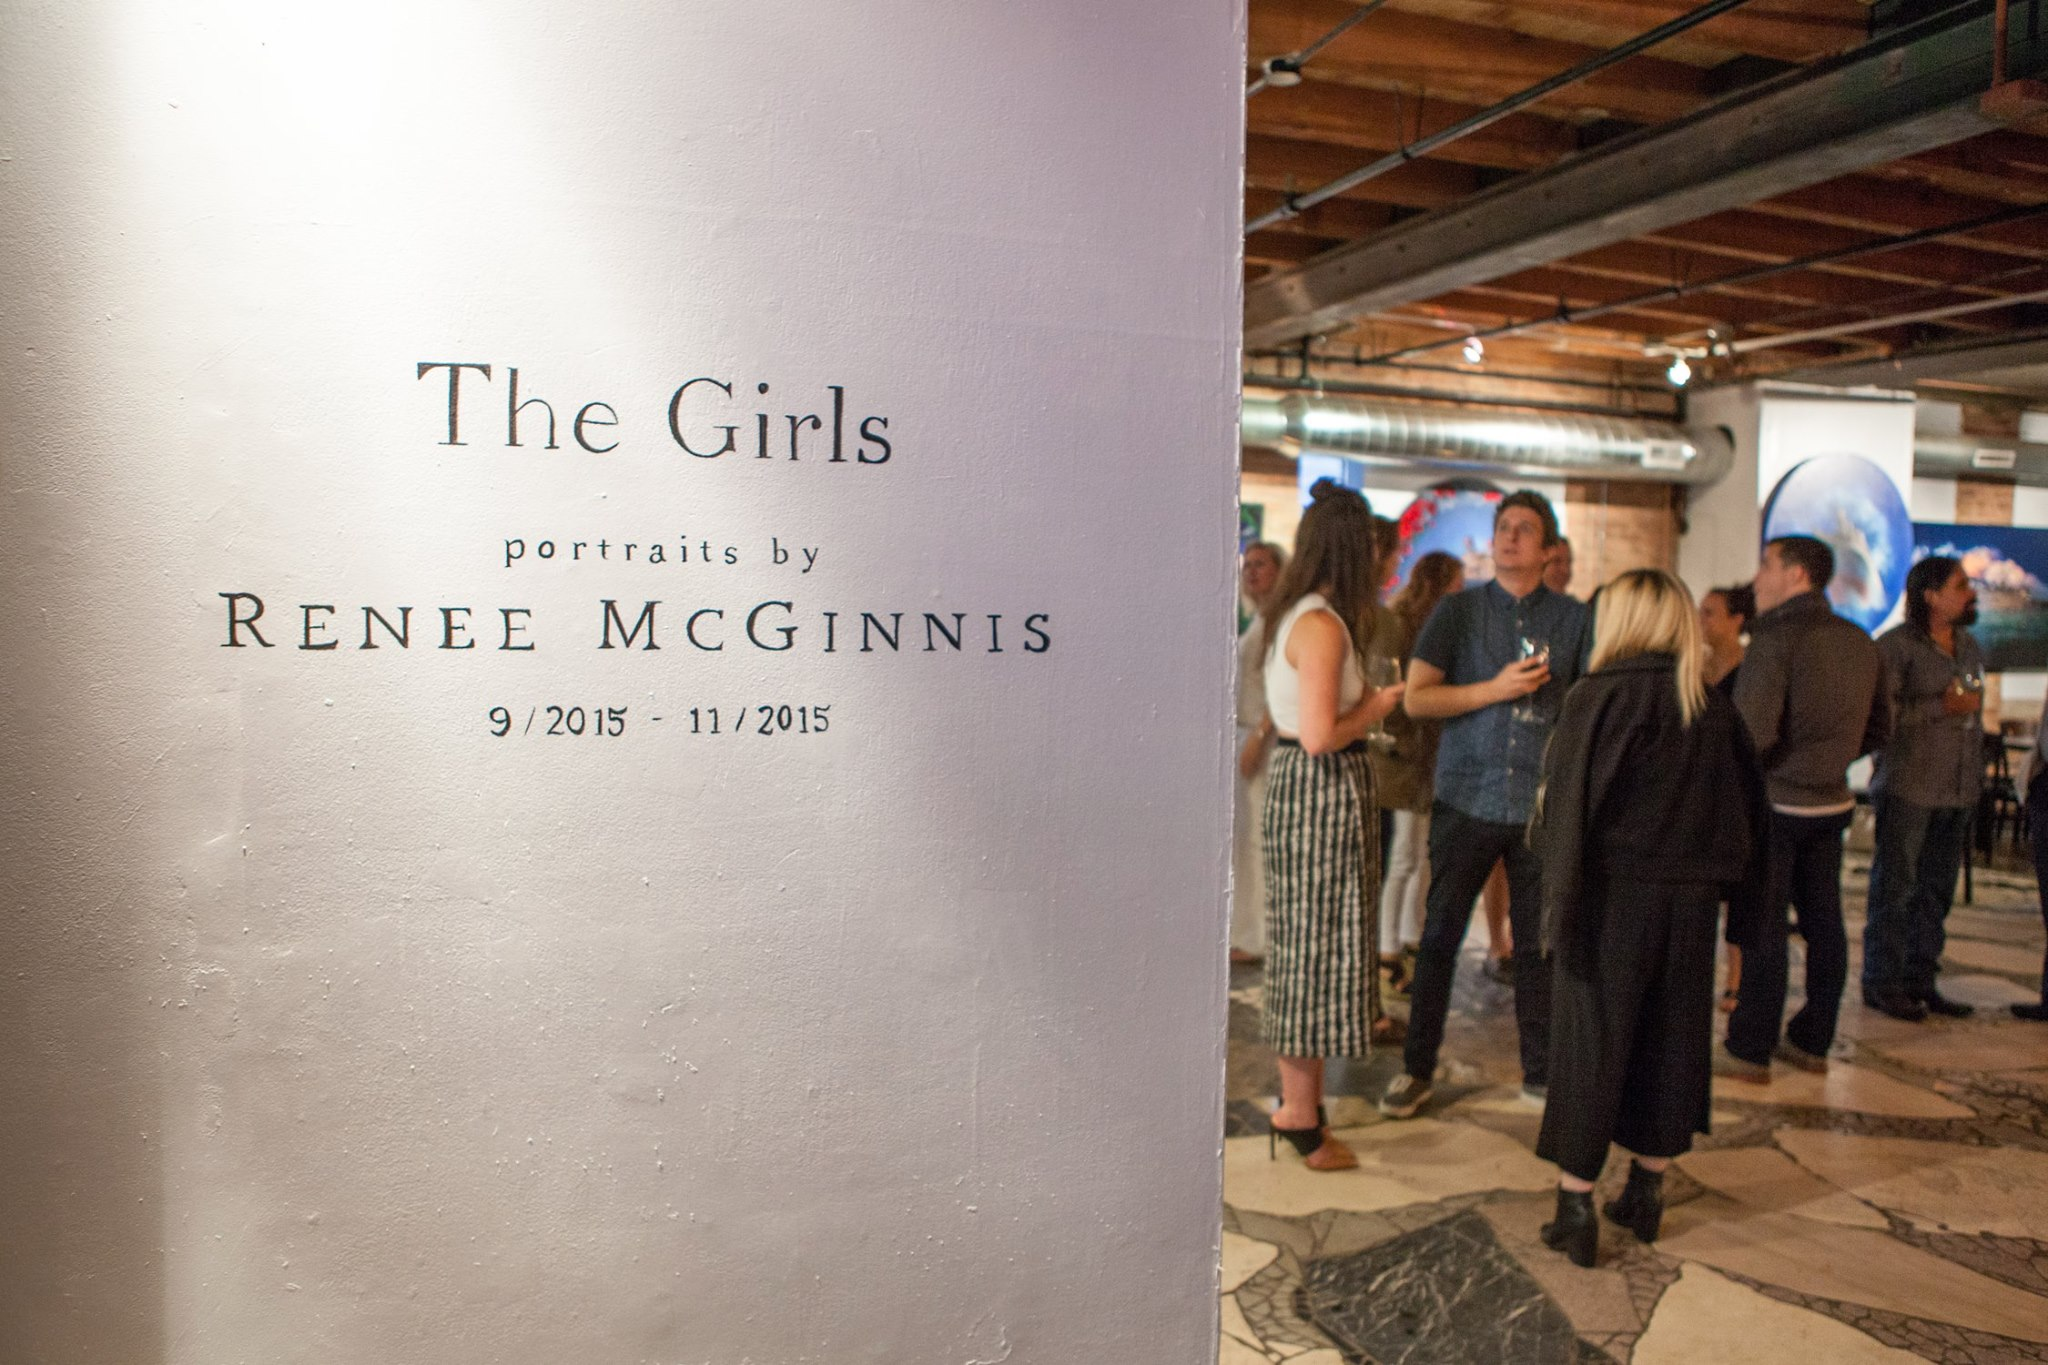 The Girls by Renee McGinnis